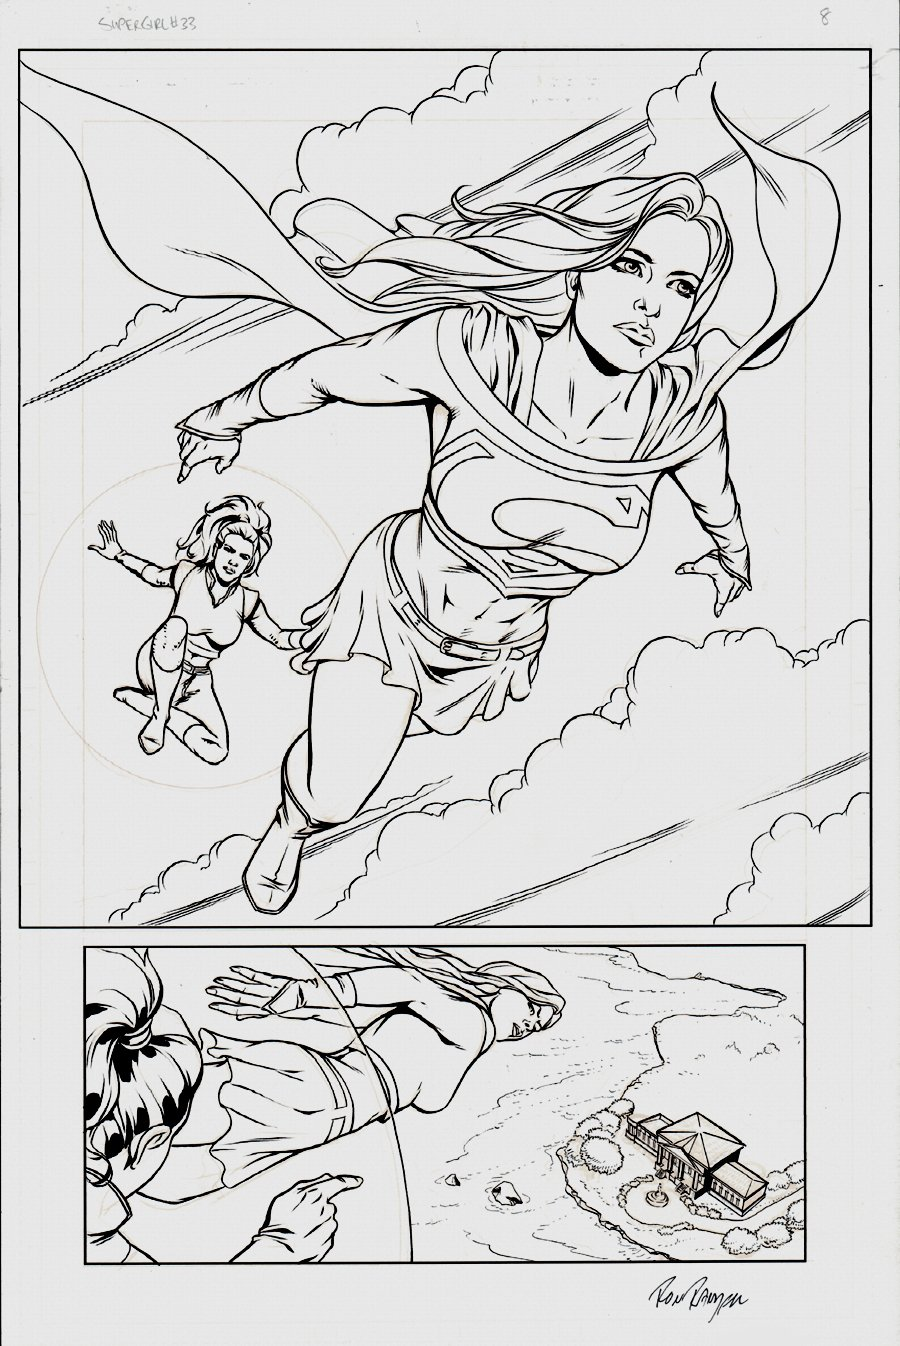 Supergirl: Way of the World #1 Cover 2008 (Also Published As Supergirl Splash Page)